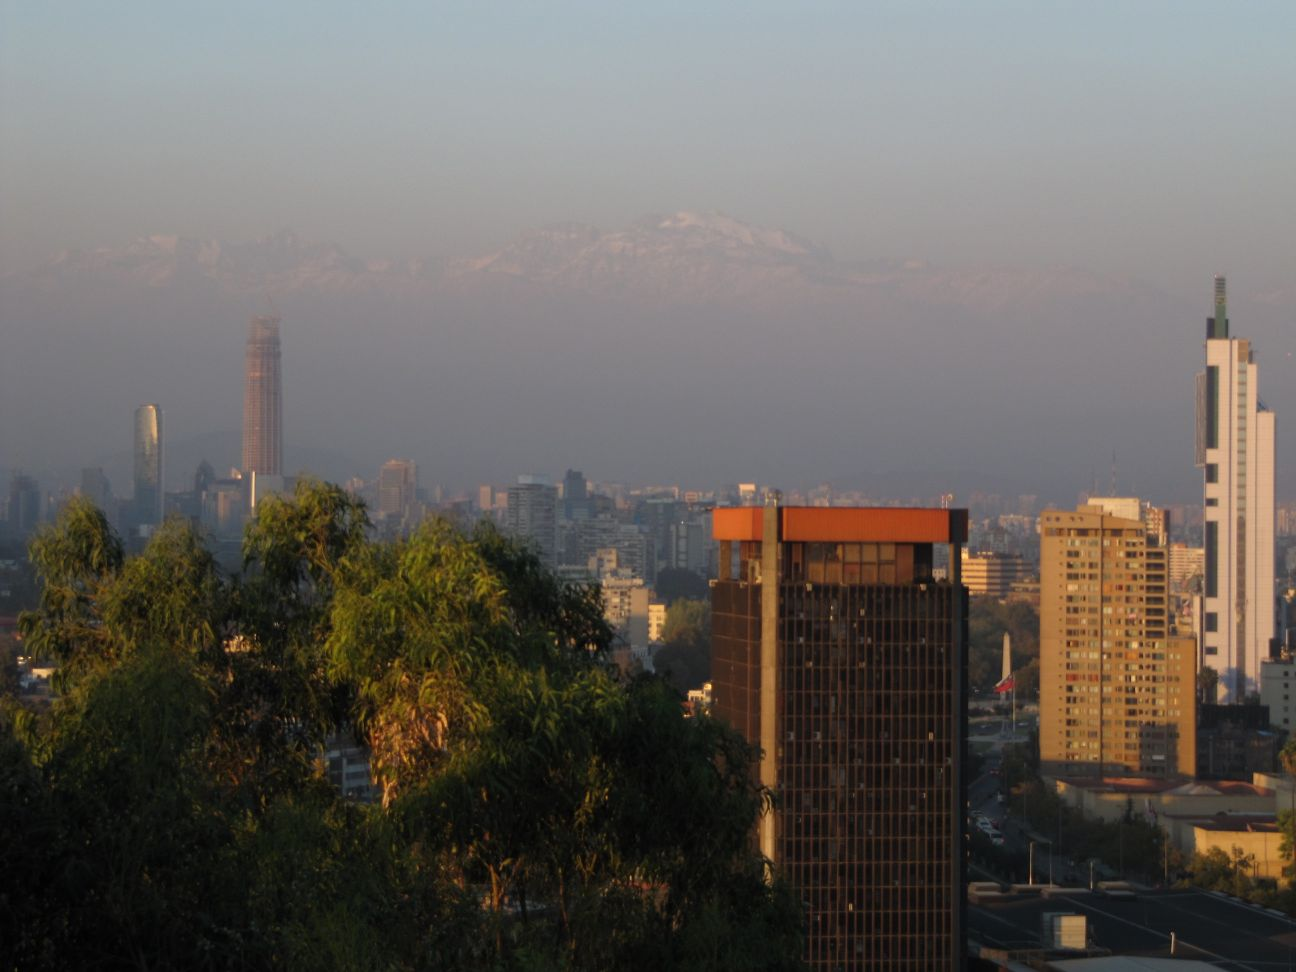 Viewing the Andes from Santiago, Chile